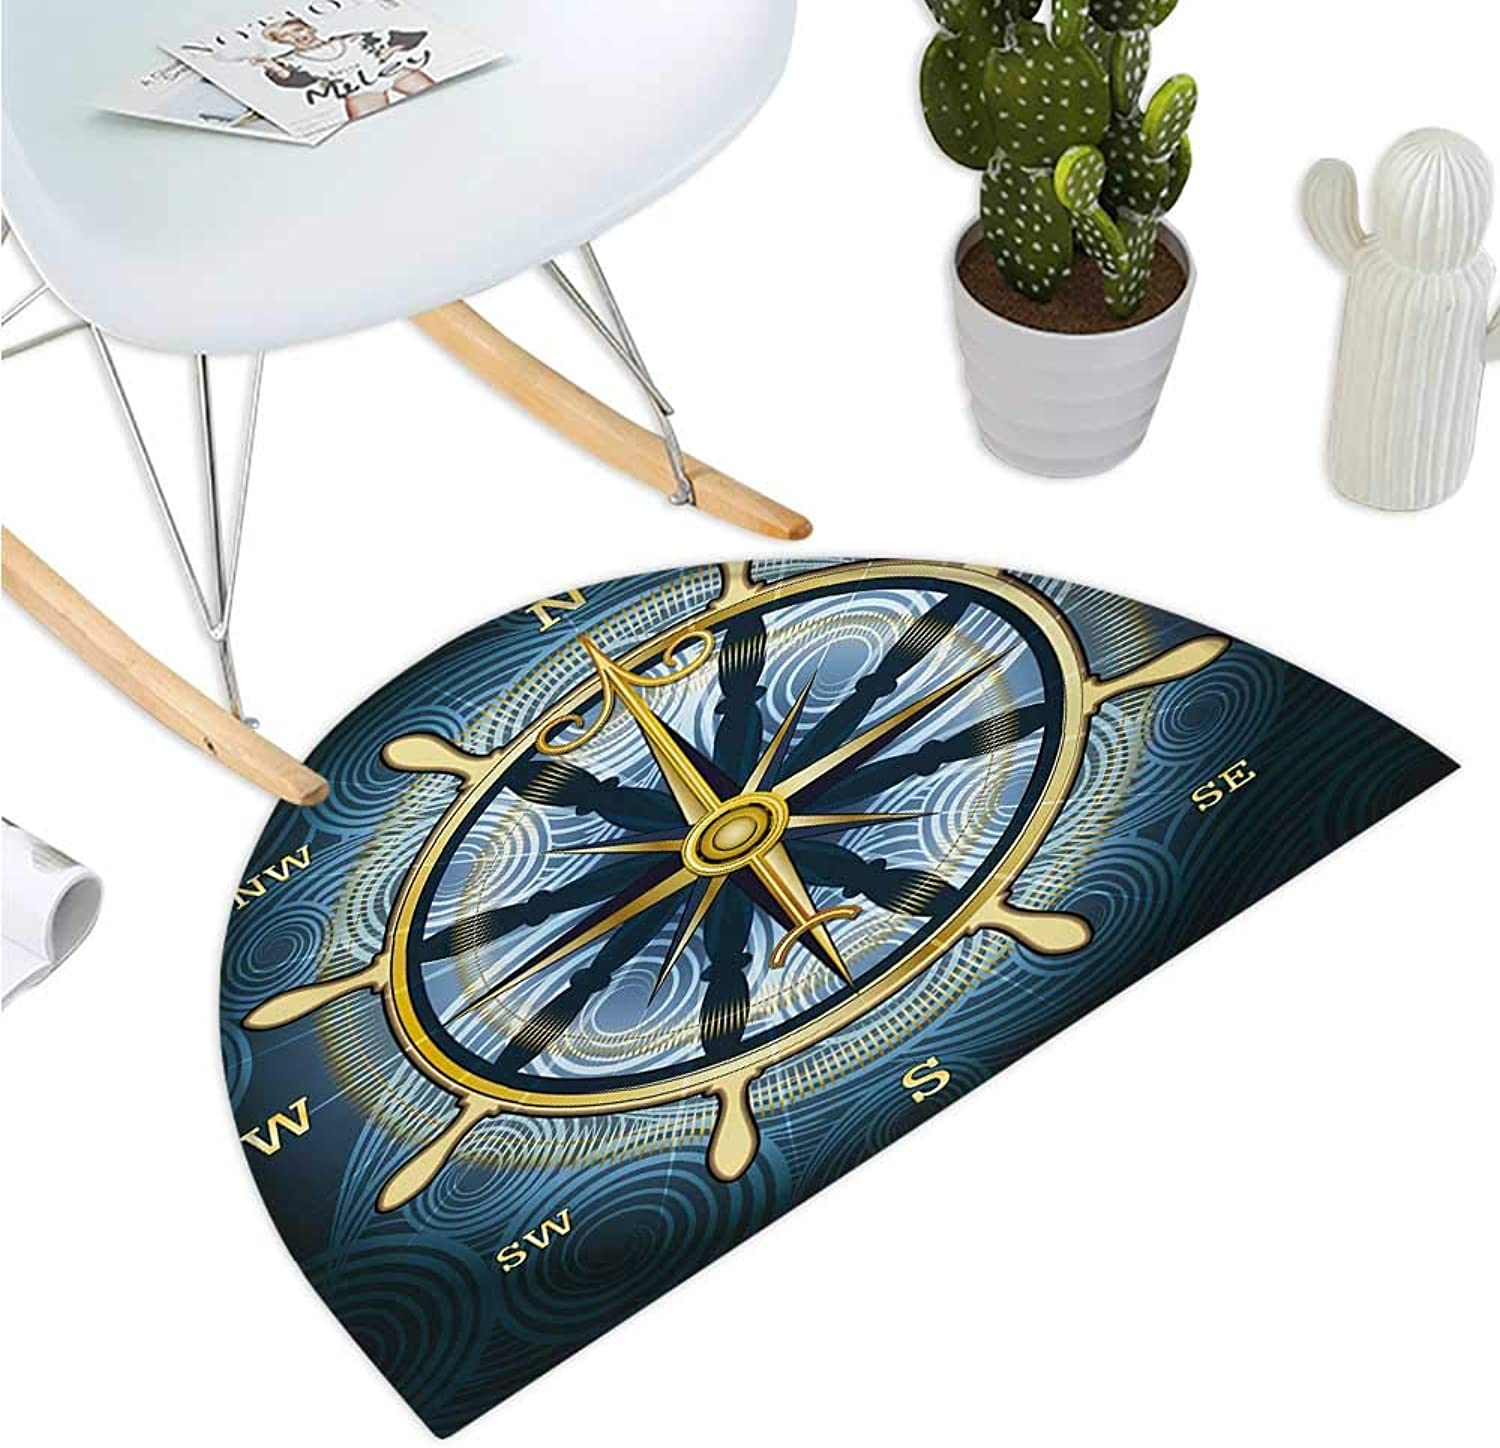 Compass Semicircular Cushion Navigation golden Compass with Windpink and Helm on a Wavy Backdrop Maritime Entry Door Mat H 47.2  xD 70.8  Yellow Navy bluee